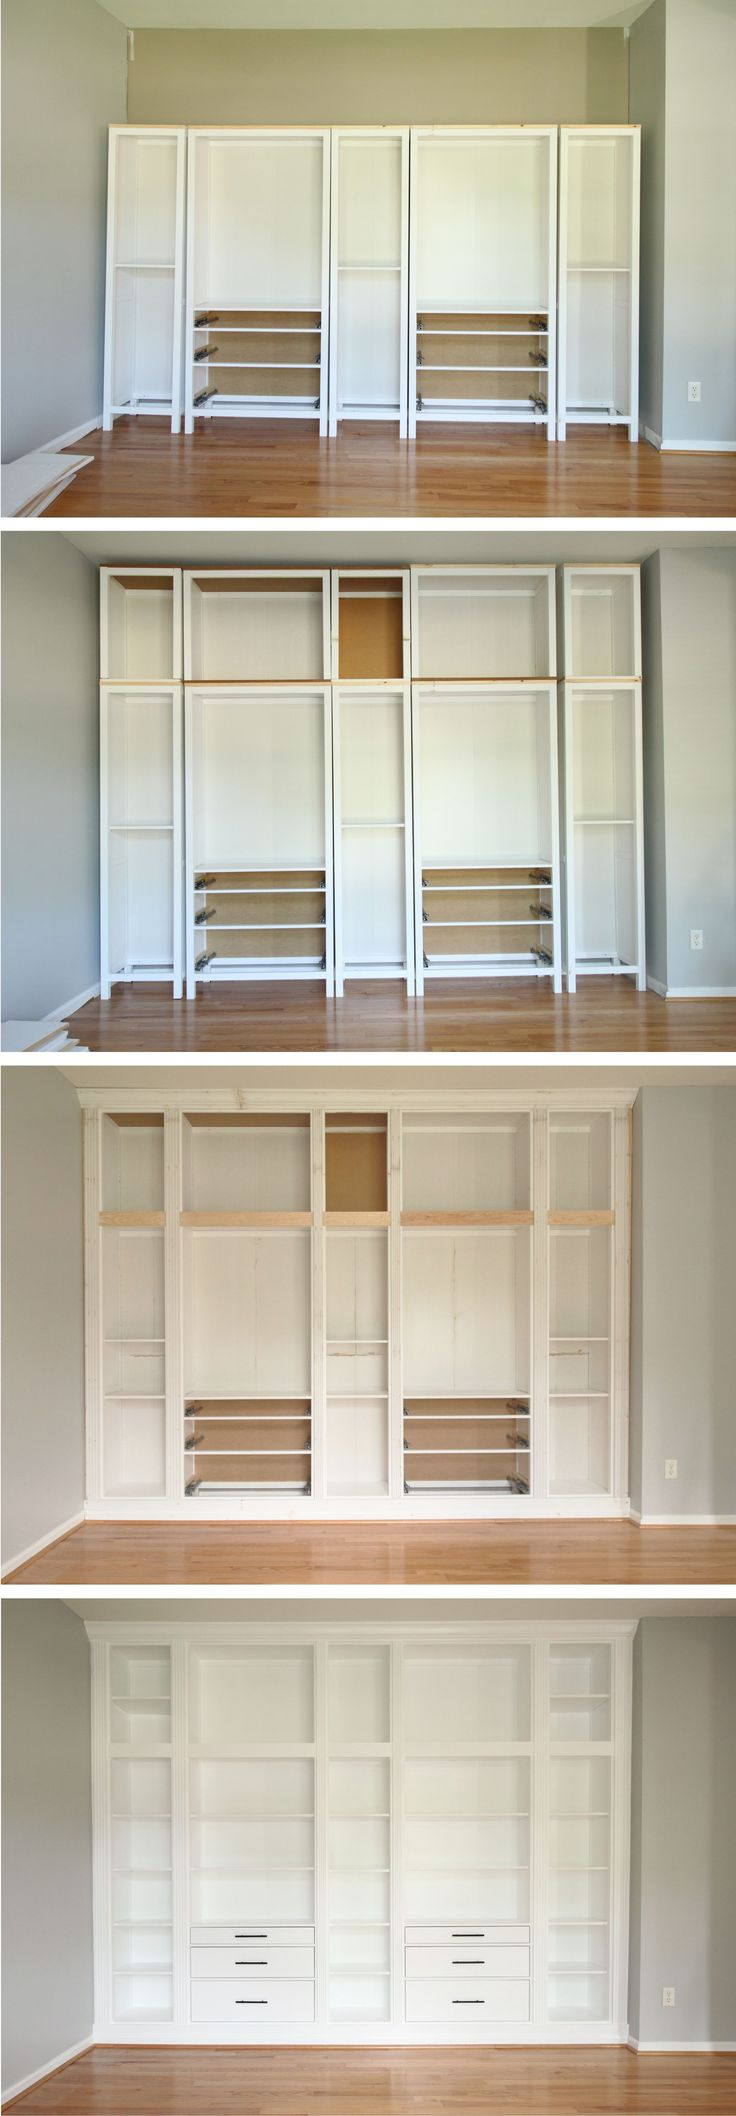 IKEA HACK: DIY BUILT-IN BOOKCASE with Hemnes furniture | Studio 36 Interiors #livingroomfurniture